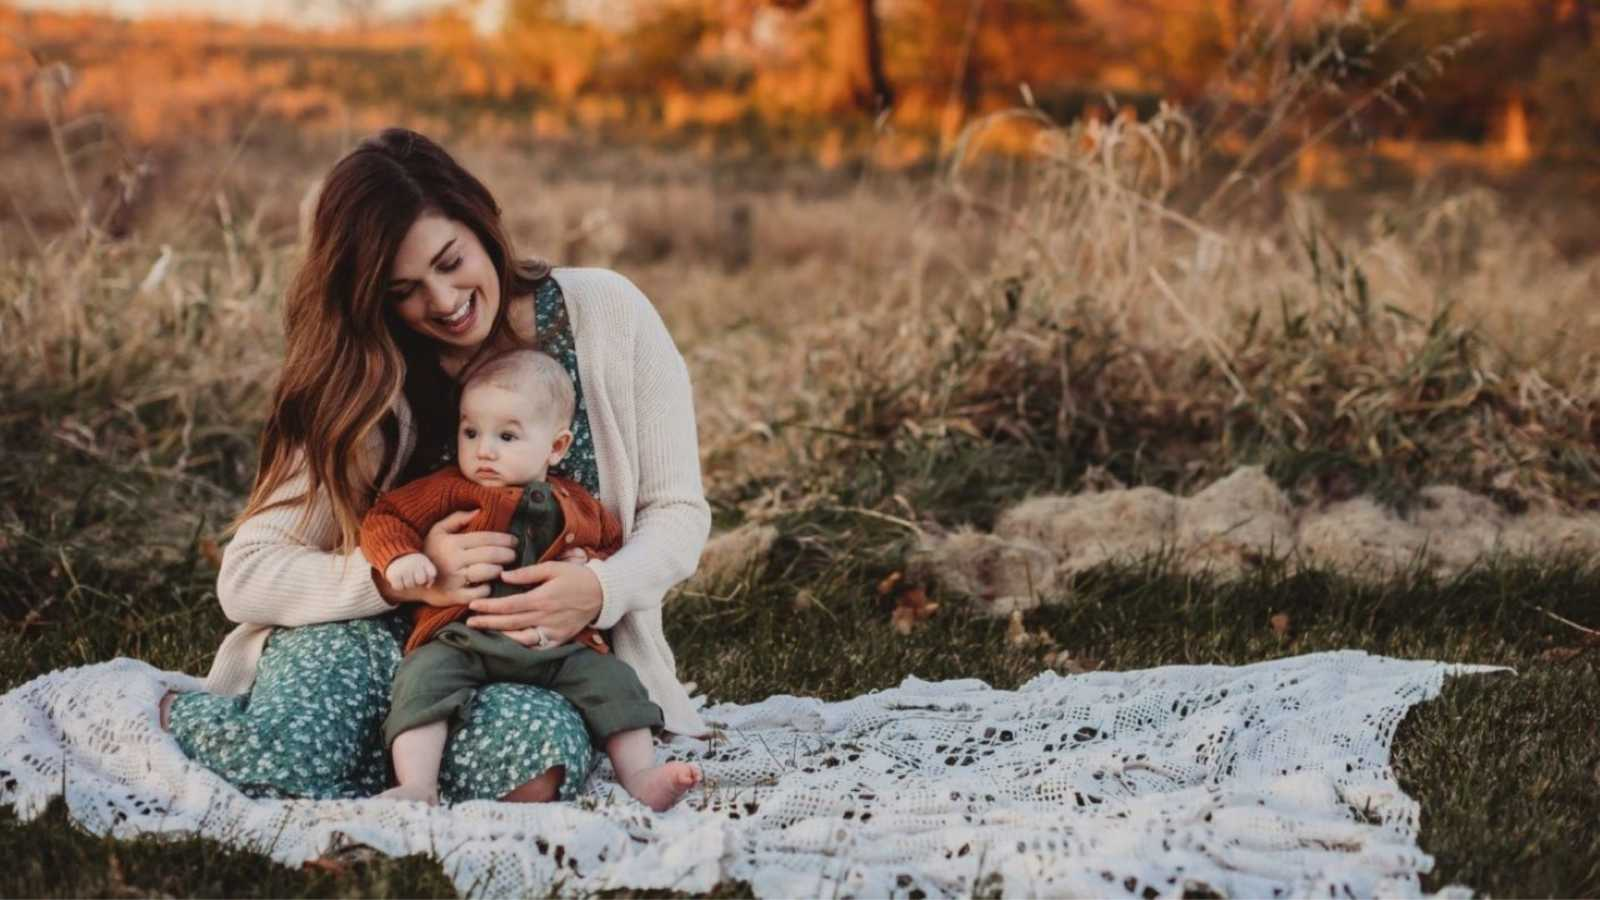 Mom holds her baby son during a beautiful Boho-themed photoshoot